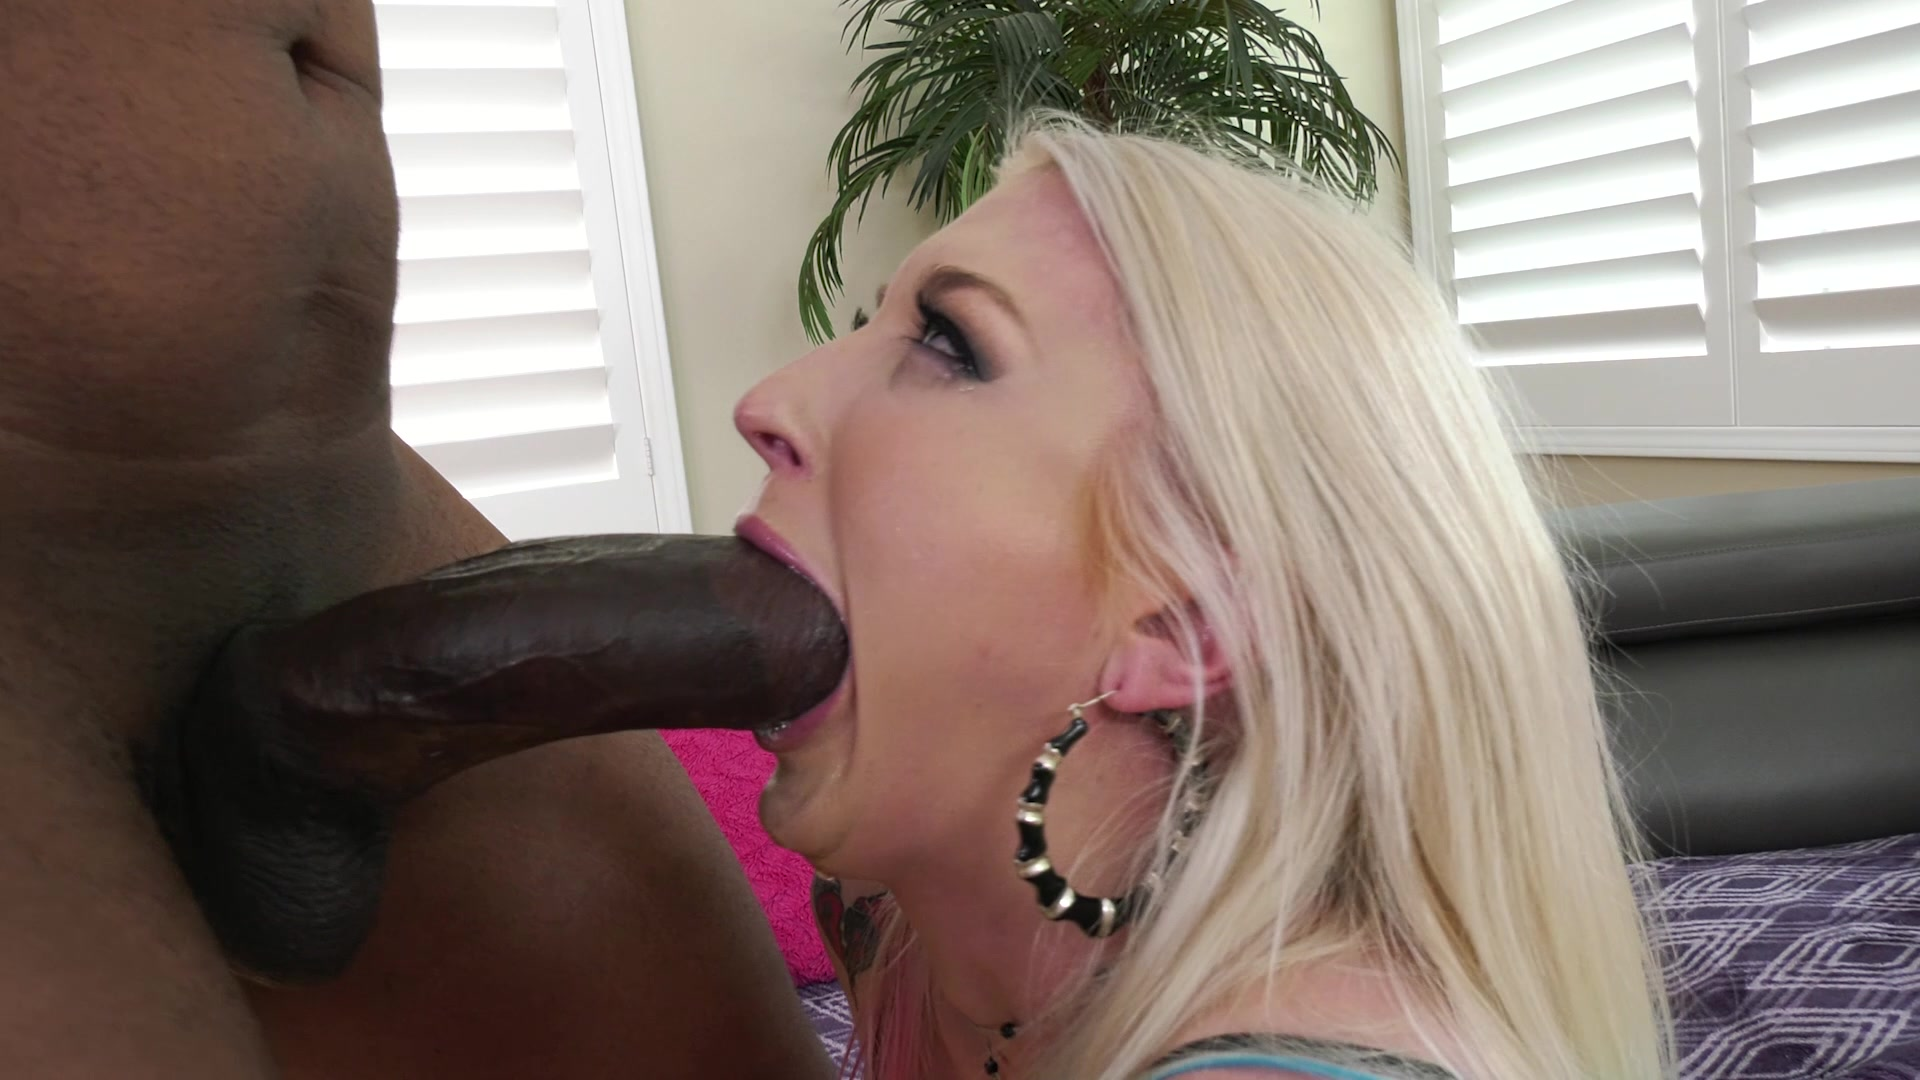 These white girls crave black cocks up their asses